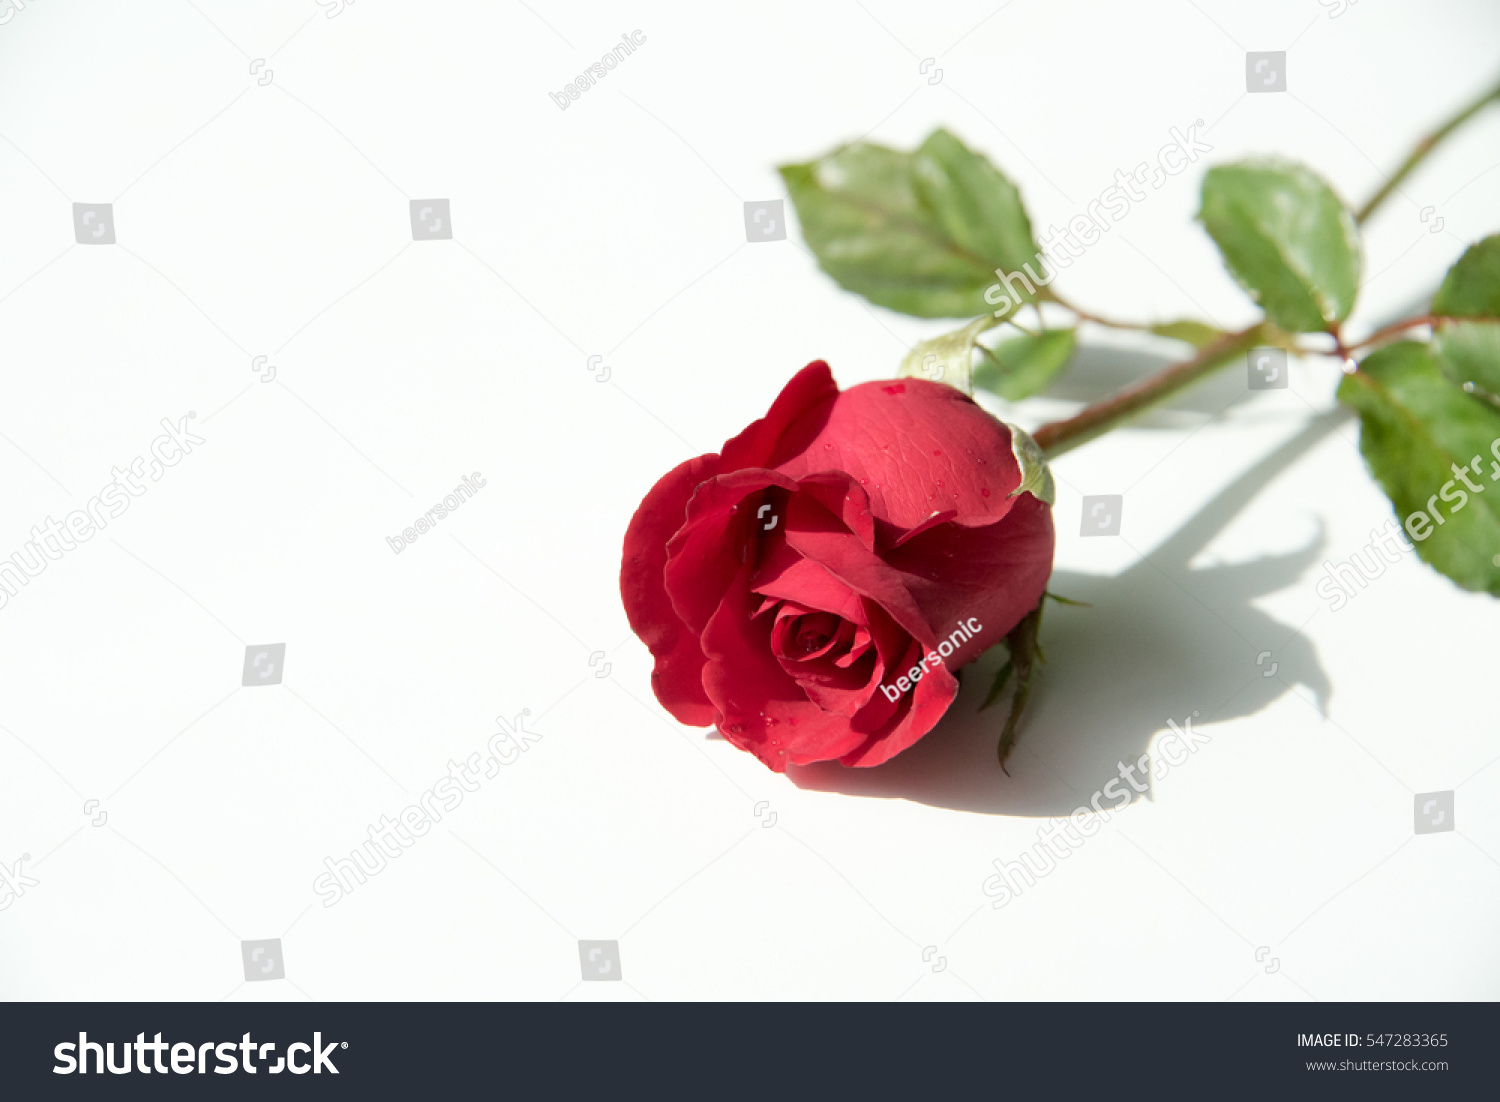 Red Rose Symbol Love Stock Photo Edit Now 547283365 Shutterstock